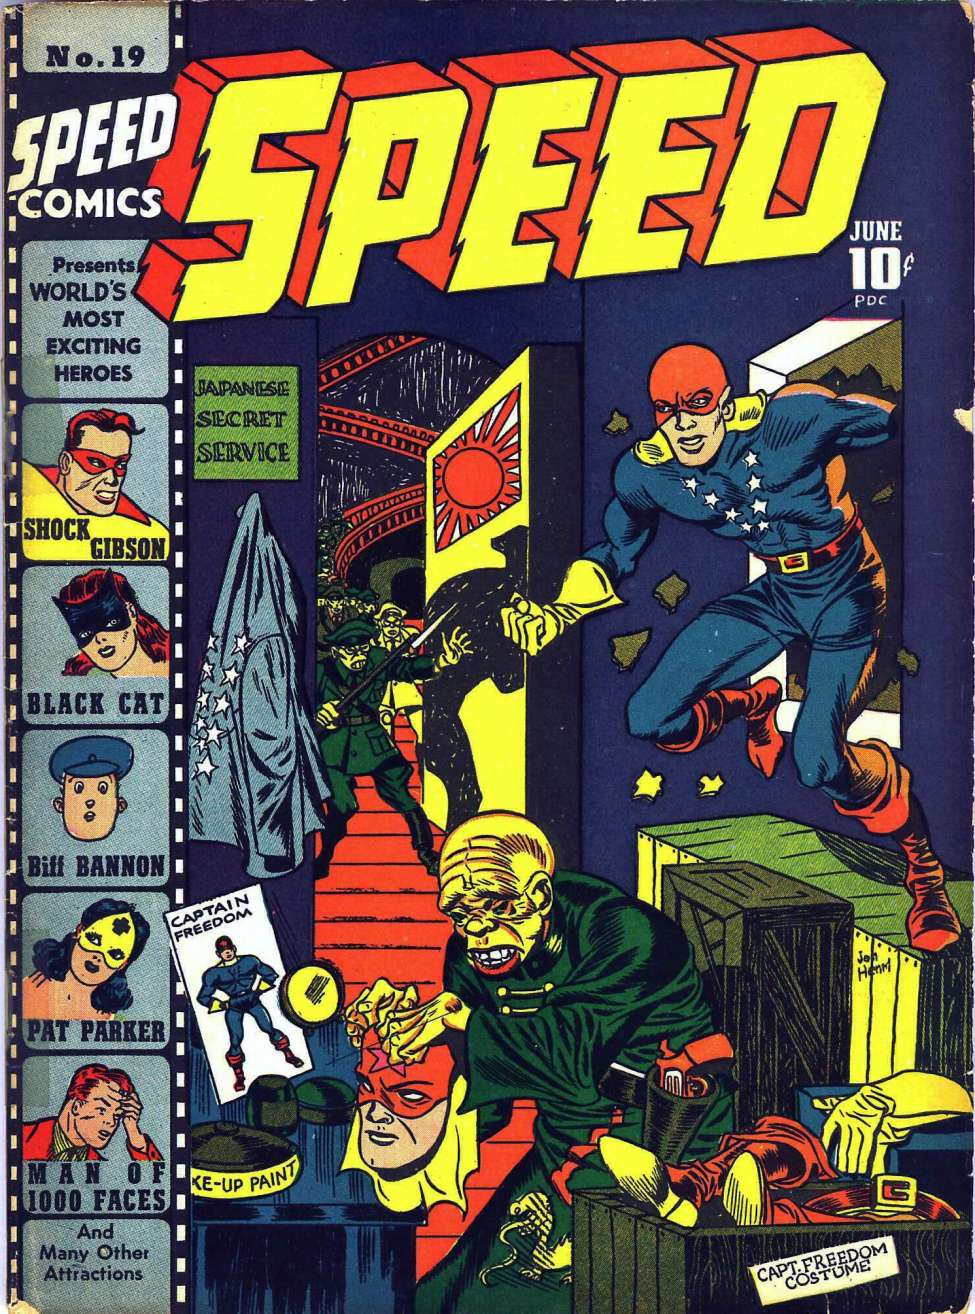 Comic Book Cover For Speed Comics #19